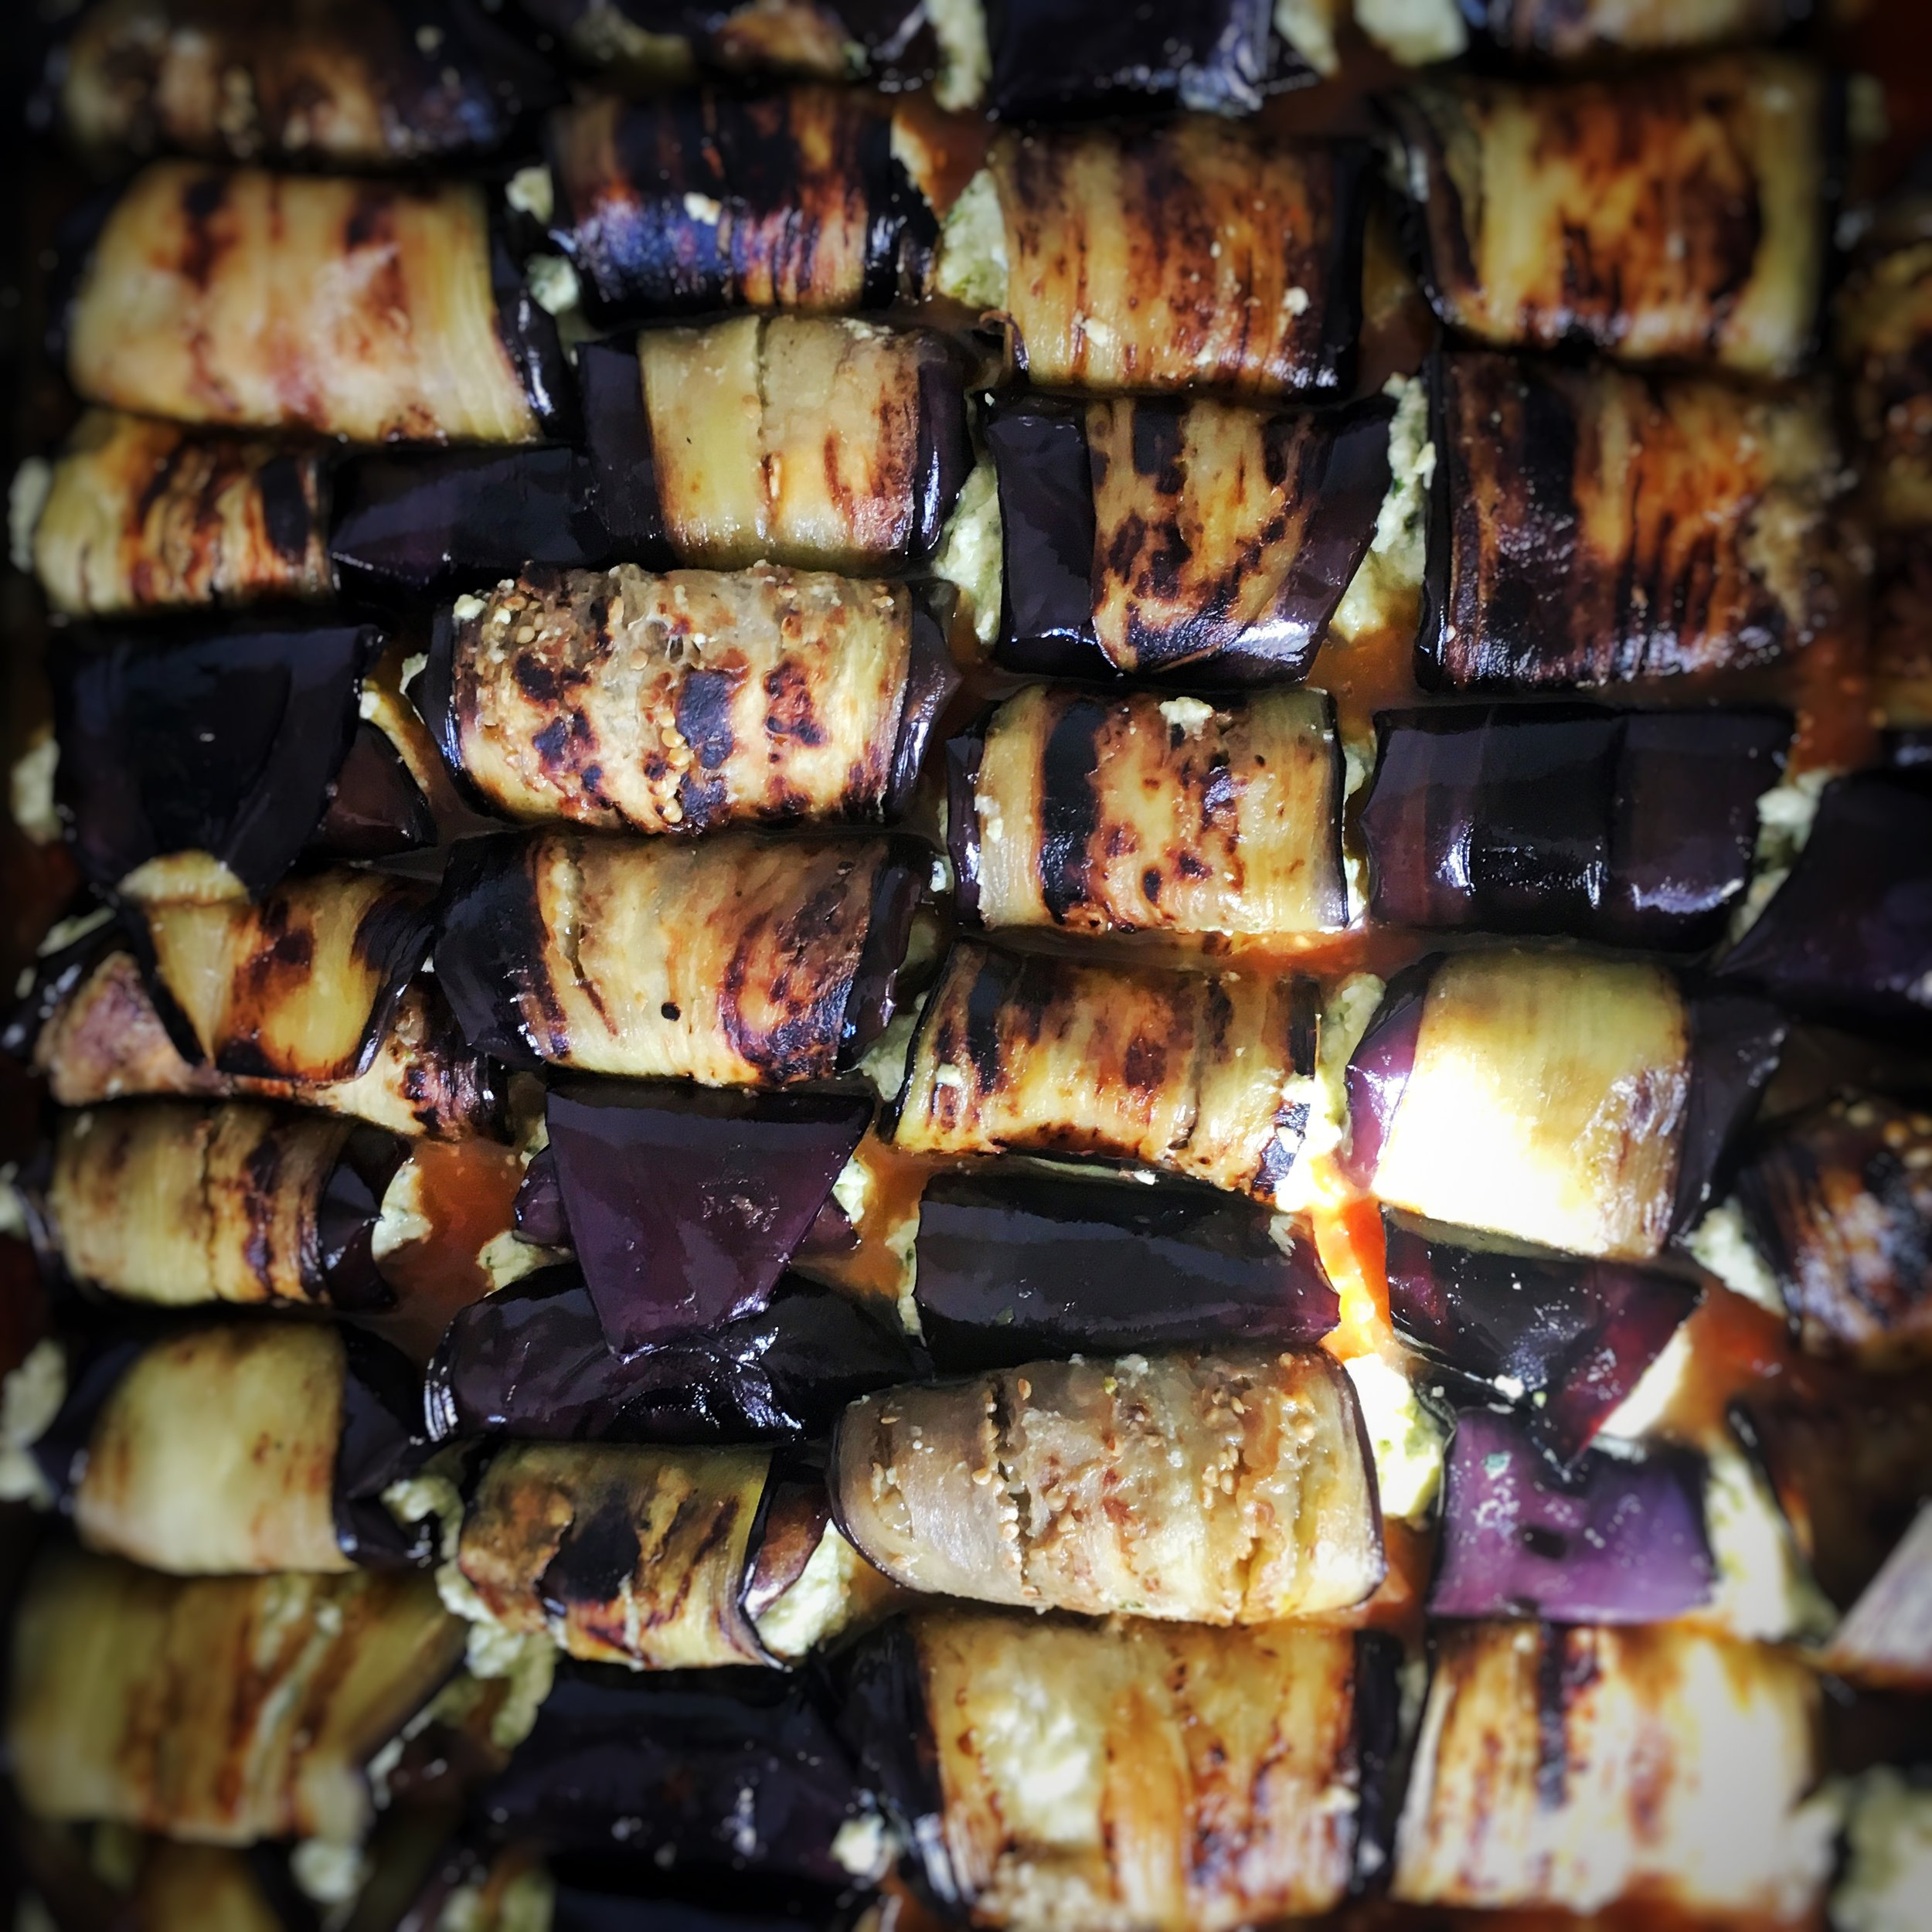 Rolled pesto ricotta in aubergines.....